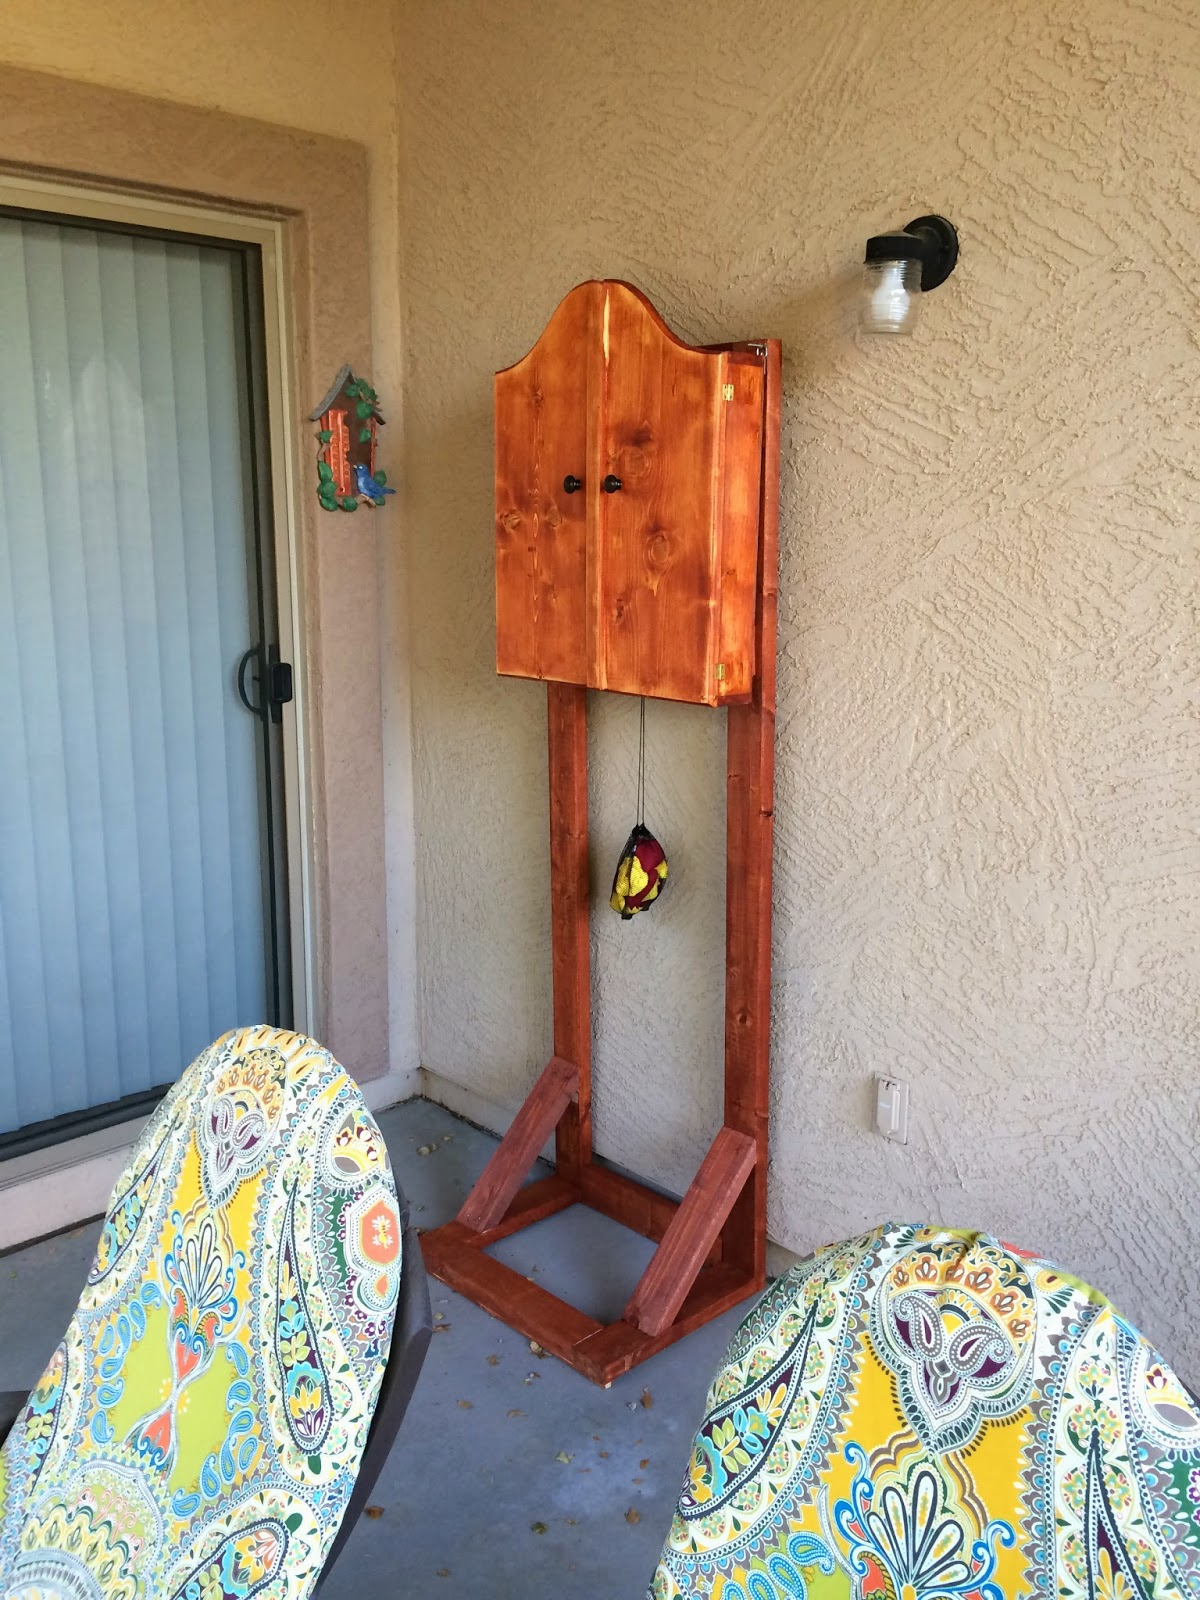 When the stand was completely dry, I attached the dartboard cabinet and put  it in place on my patio.